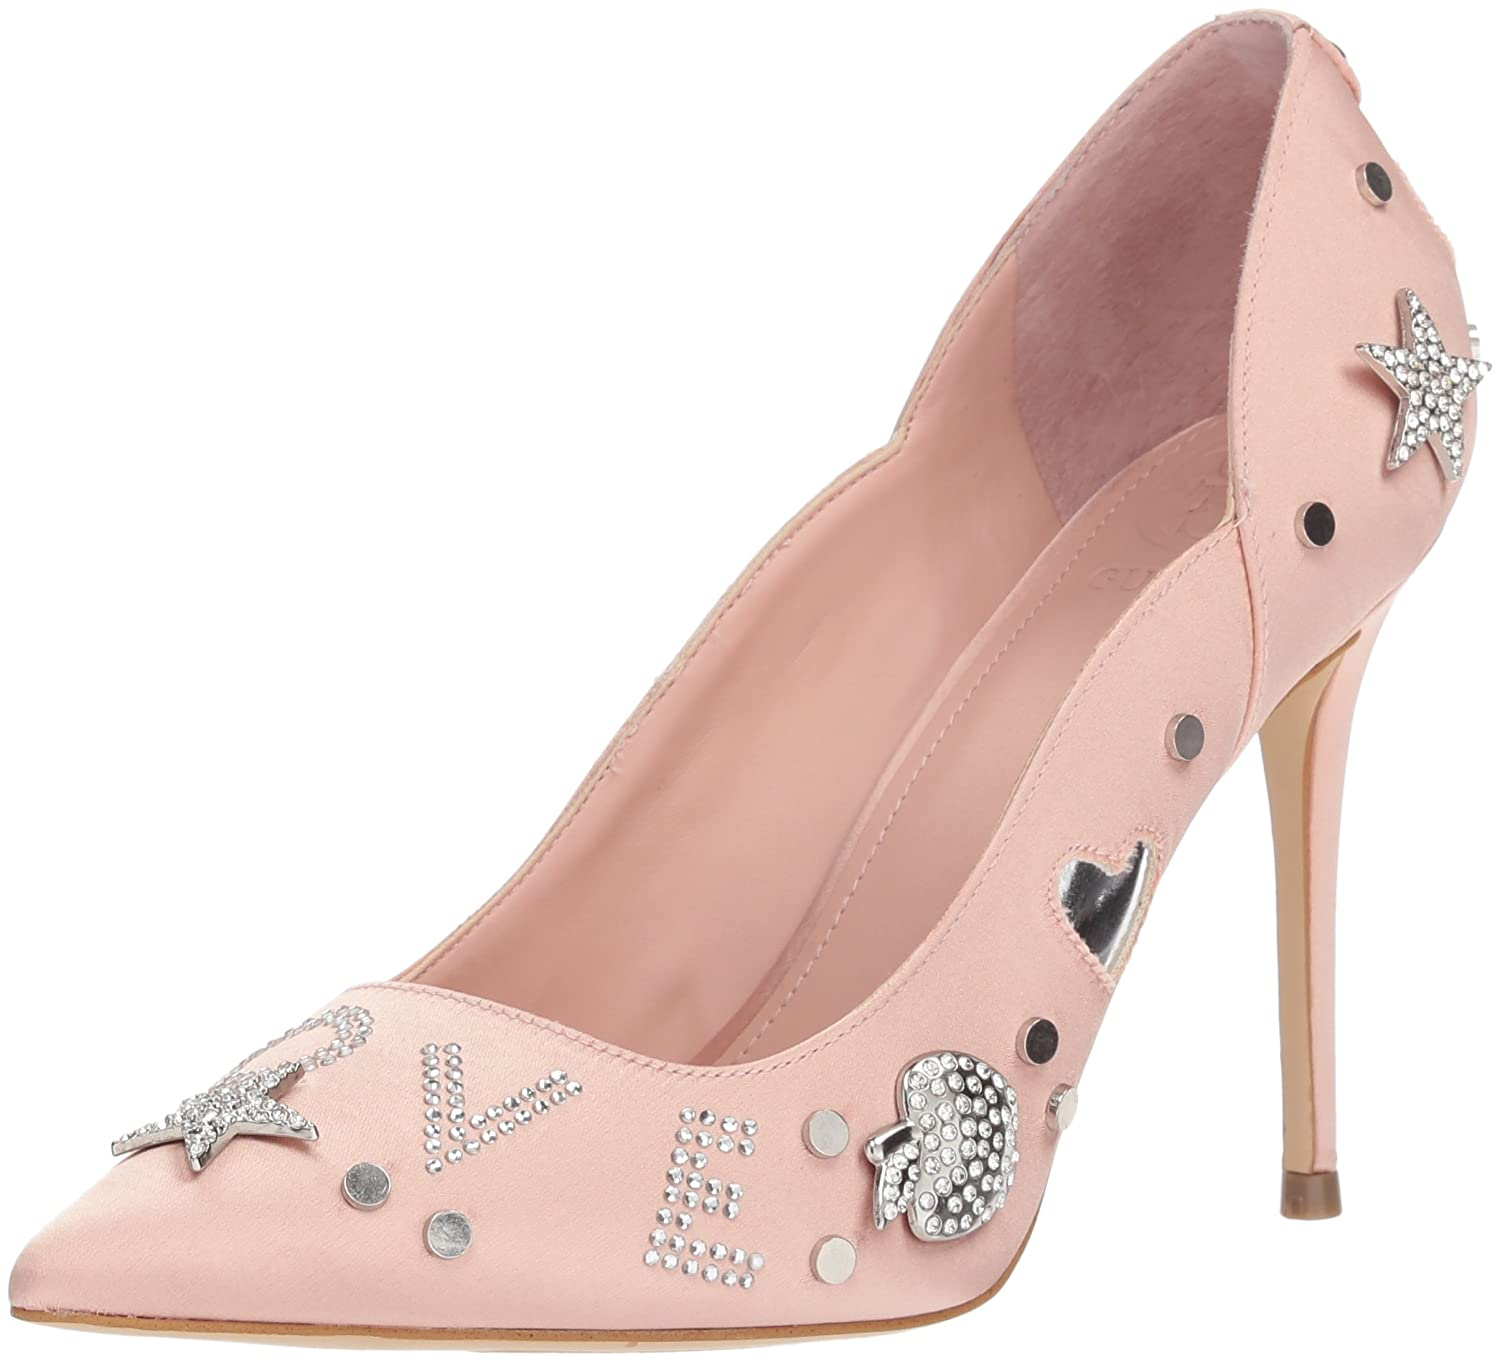 GUESS Women's Belle Pump B077517G4Q 7 B(M) US|Blush